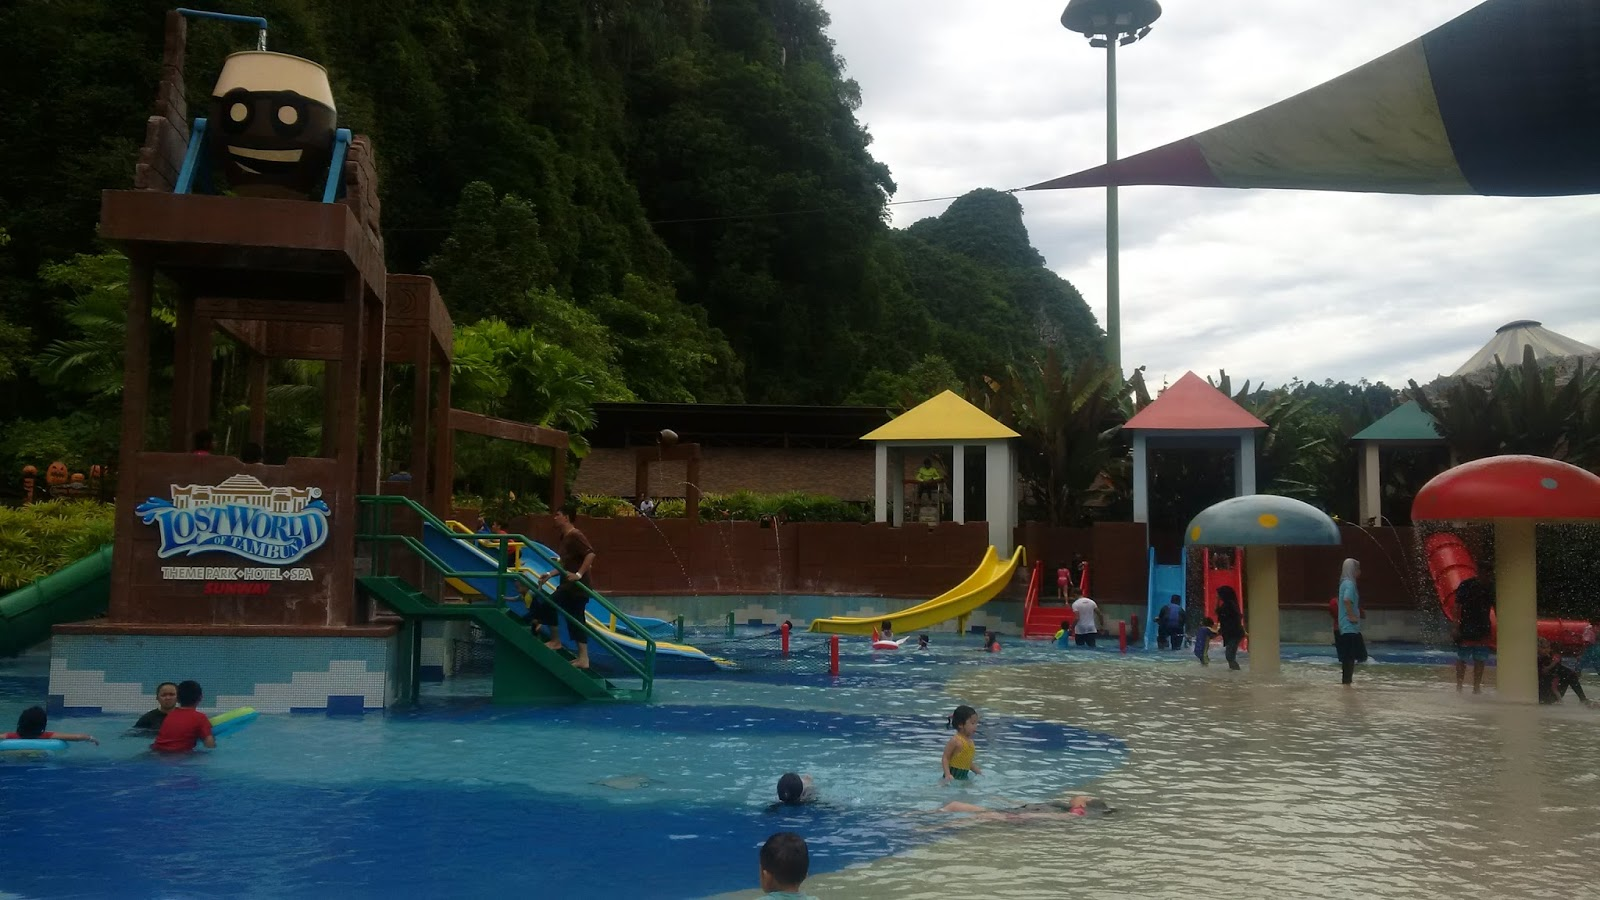 All about malaysia lost world of tambun ipoh accommodation perak good hotels ipoh hotels lost world hotel ipoh malaysia hotels gumiabroncs Image collections